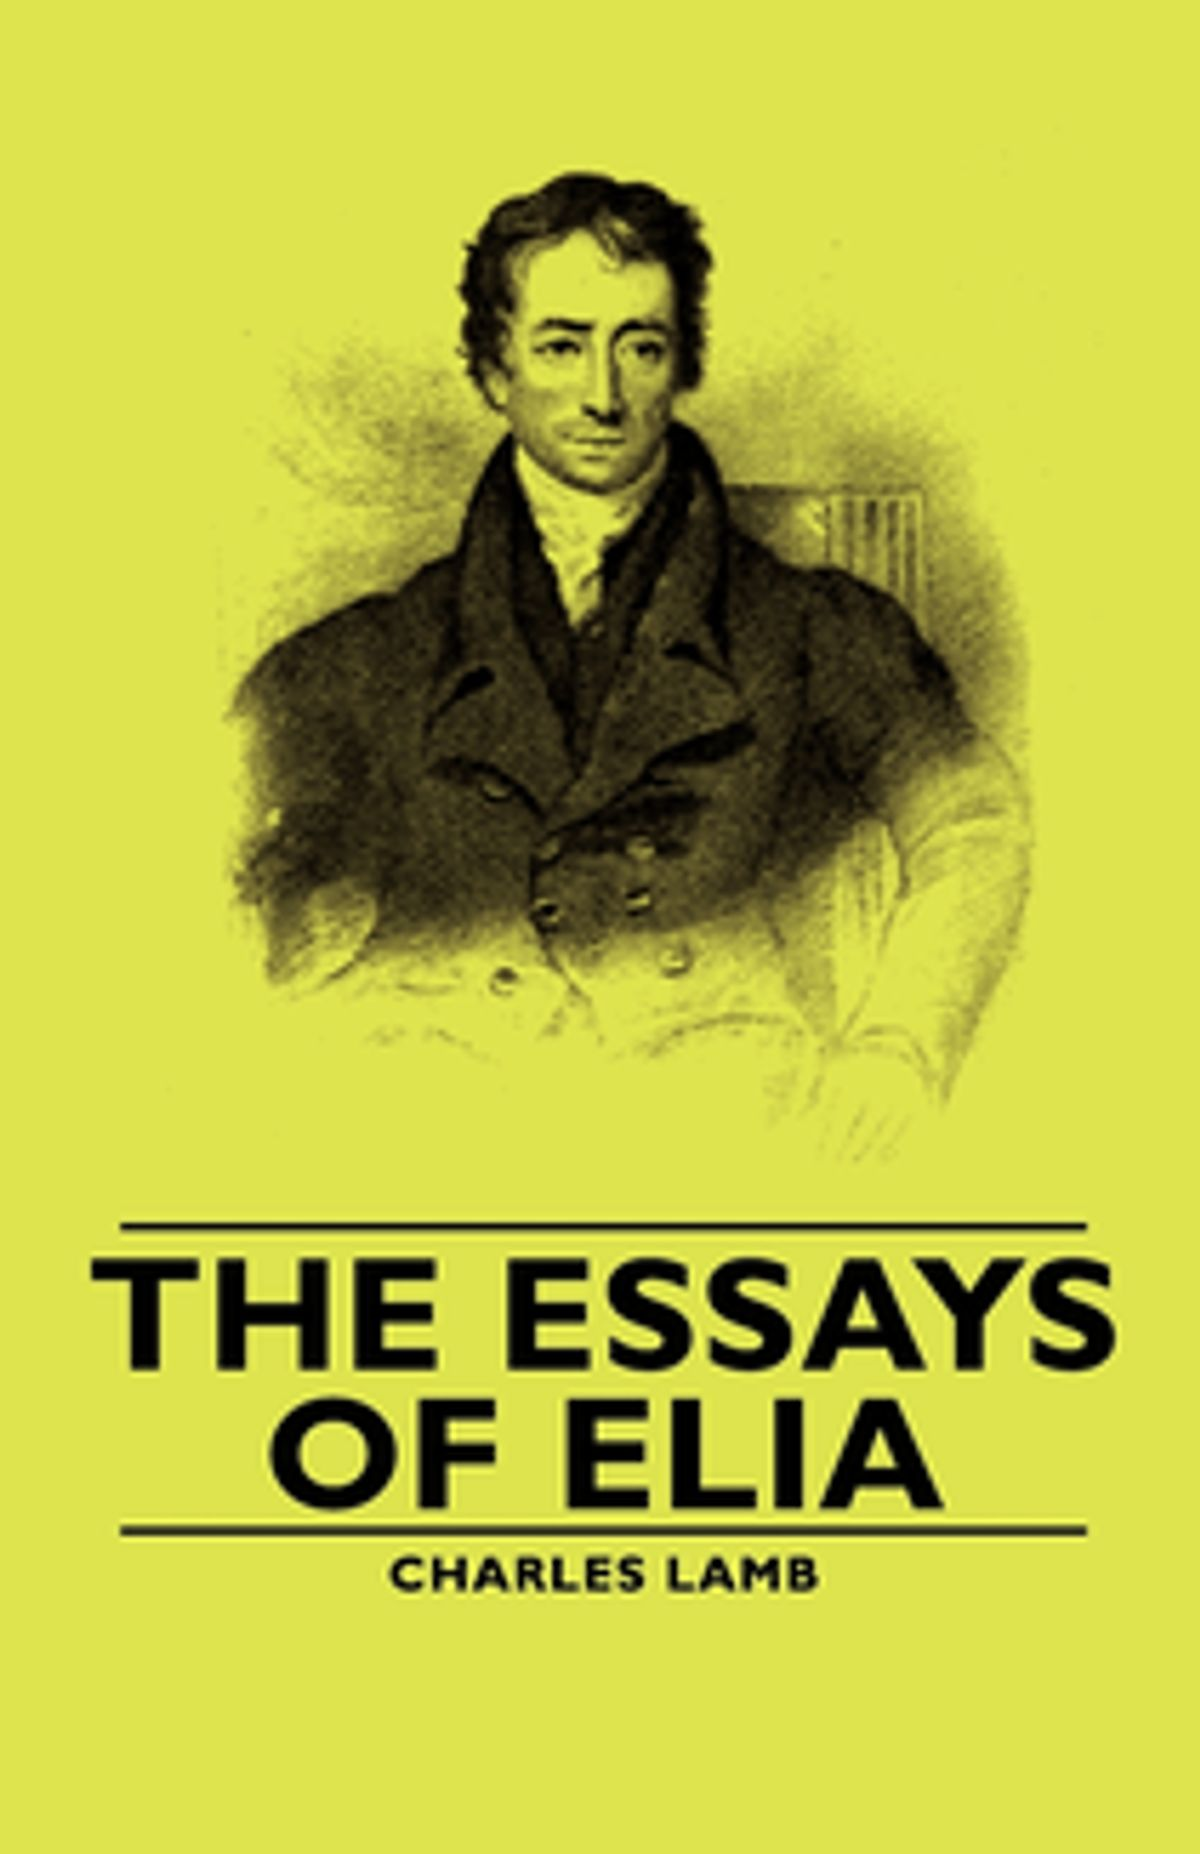 004 Essays Of Elia Essay Example Striking Epub Summary Text Pdf Full